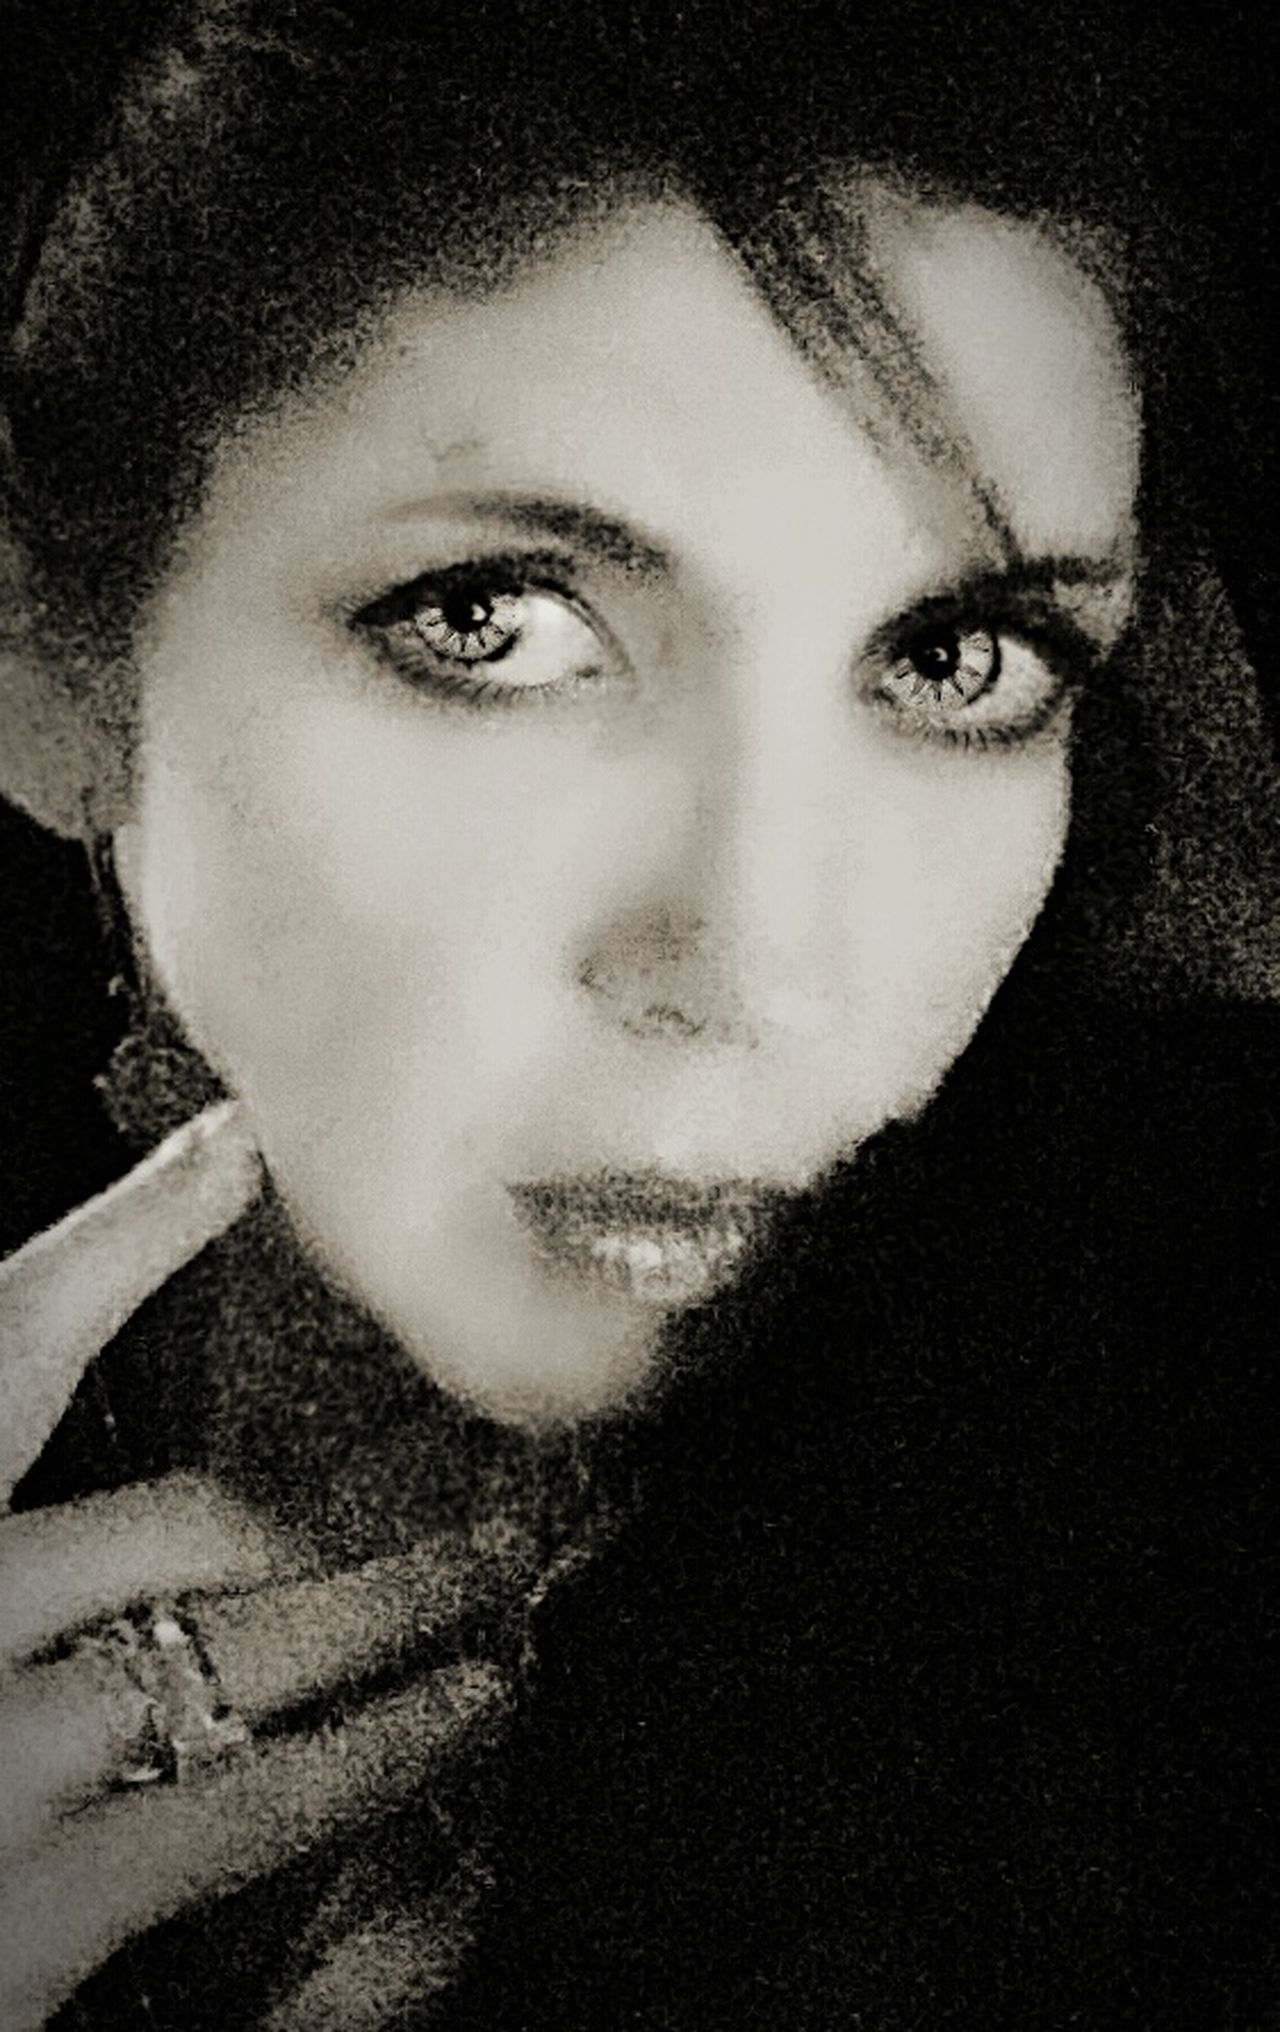 Black And White Collection  Eyes Wide Open Black And White Photography Eyesblue February 2012 Self Portrait River Reagan Photography Taking Photos